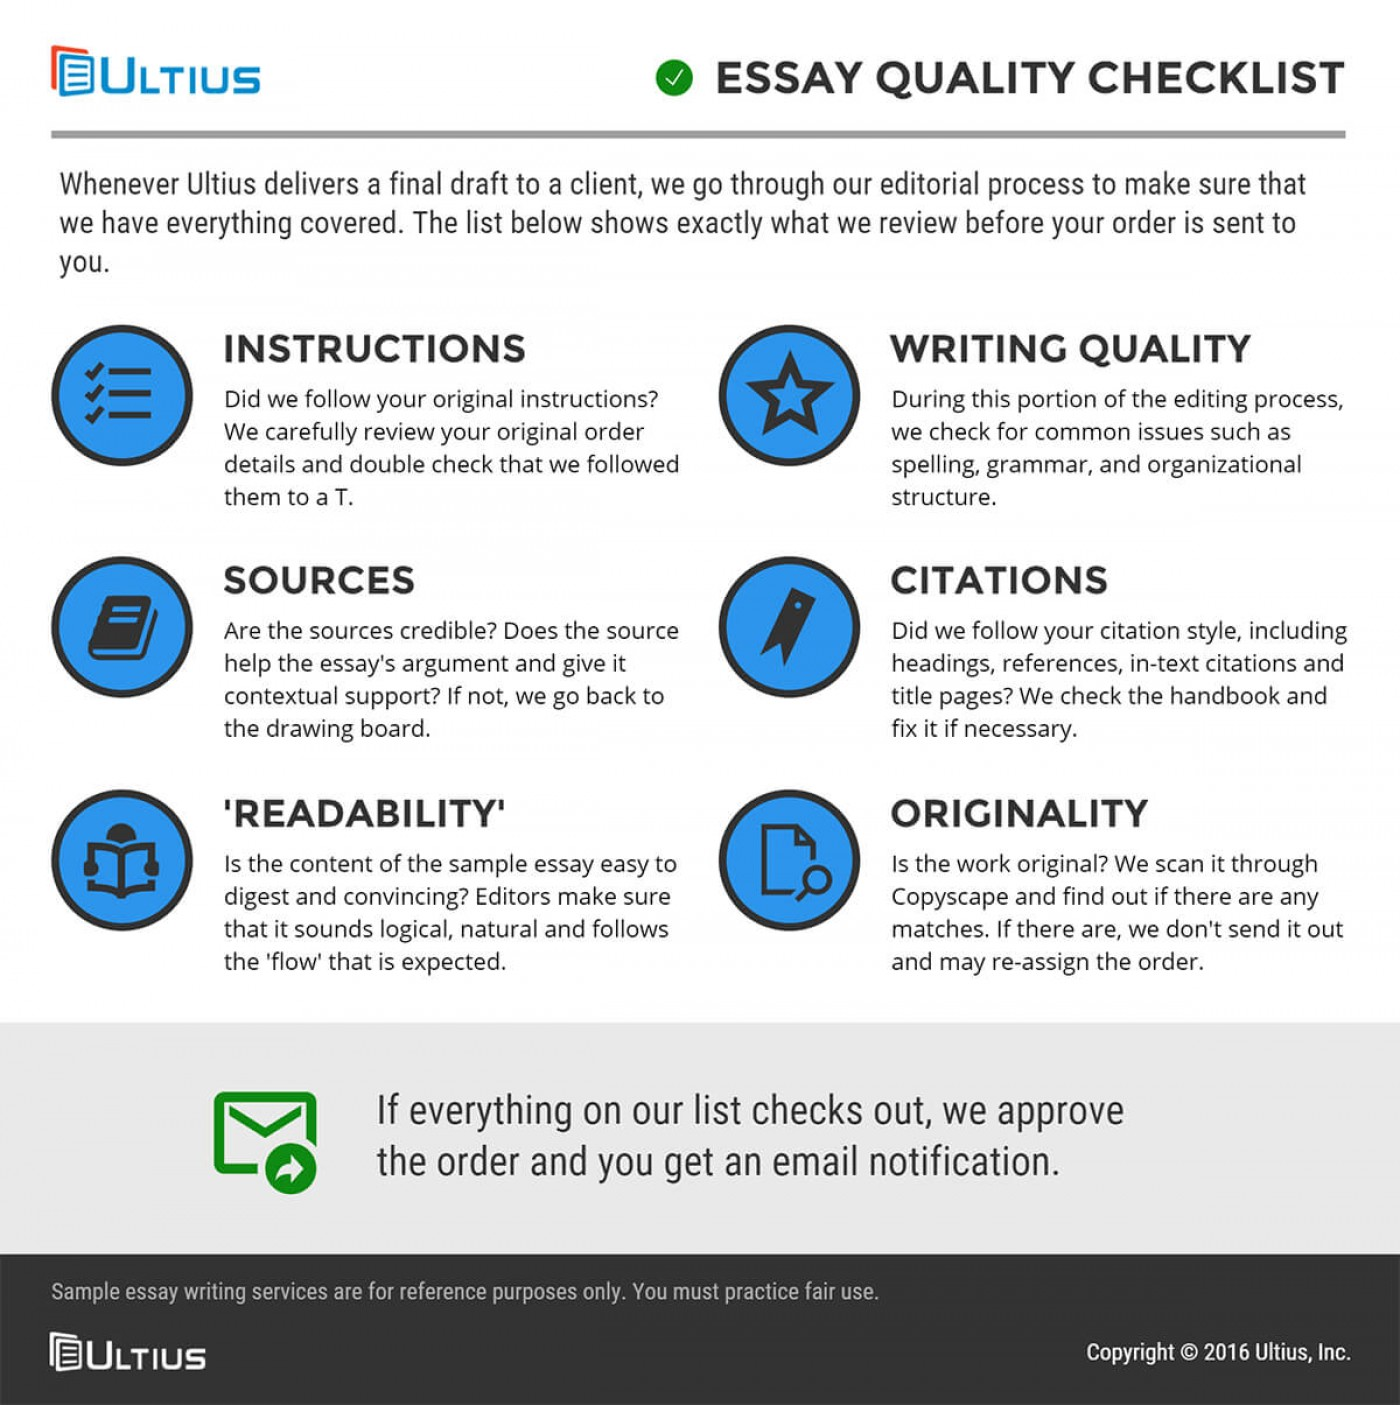 014 Essay Example Purchased Quality Checklist Dreaded Persuasive Rubric Word Document Graphic Organizer 8th Grade Outline High School 1400